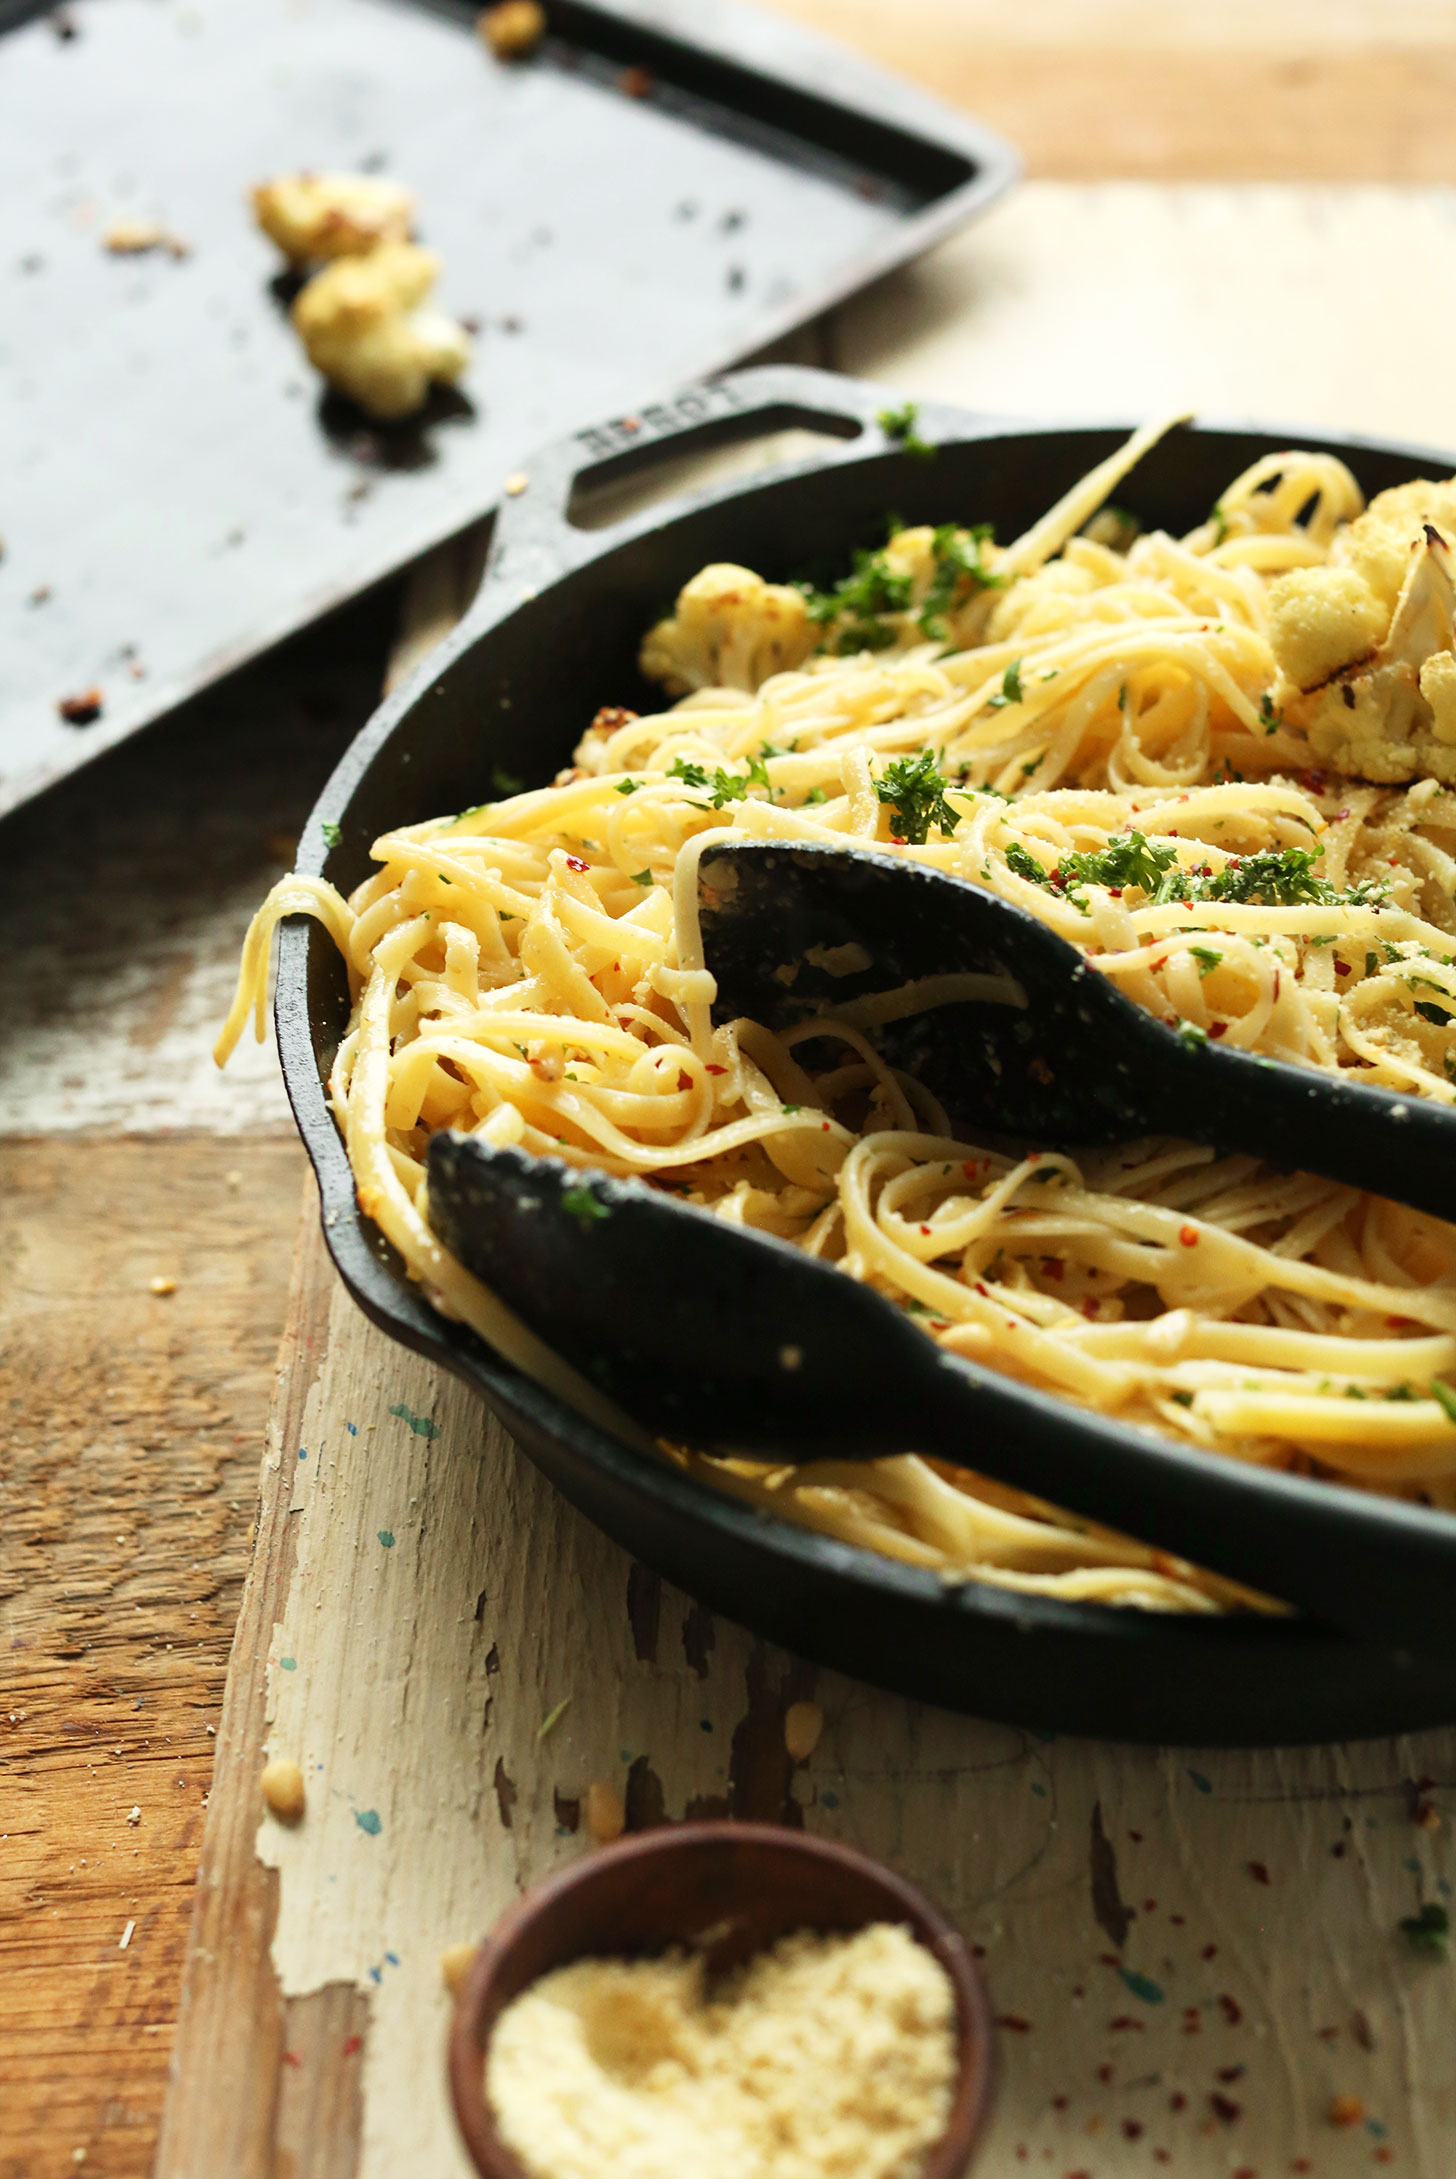 Cast-iron skillet filled with easy vegan Garlicky Spicy Pasta with Roasted Cauliflower